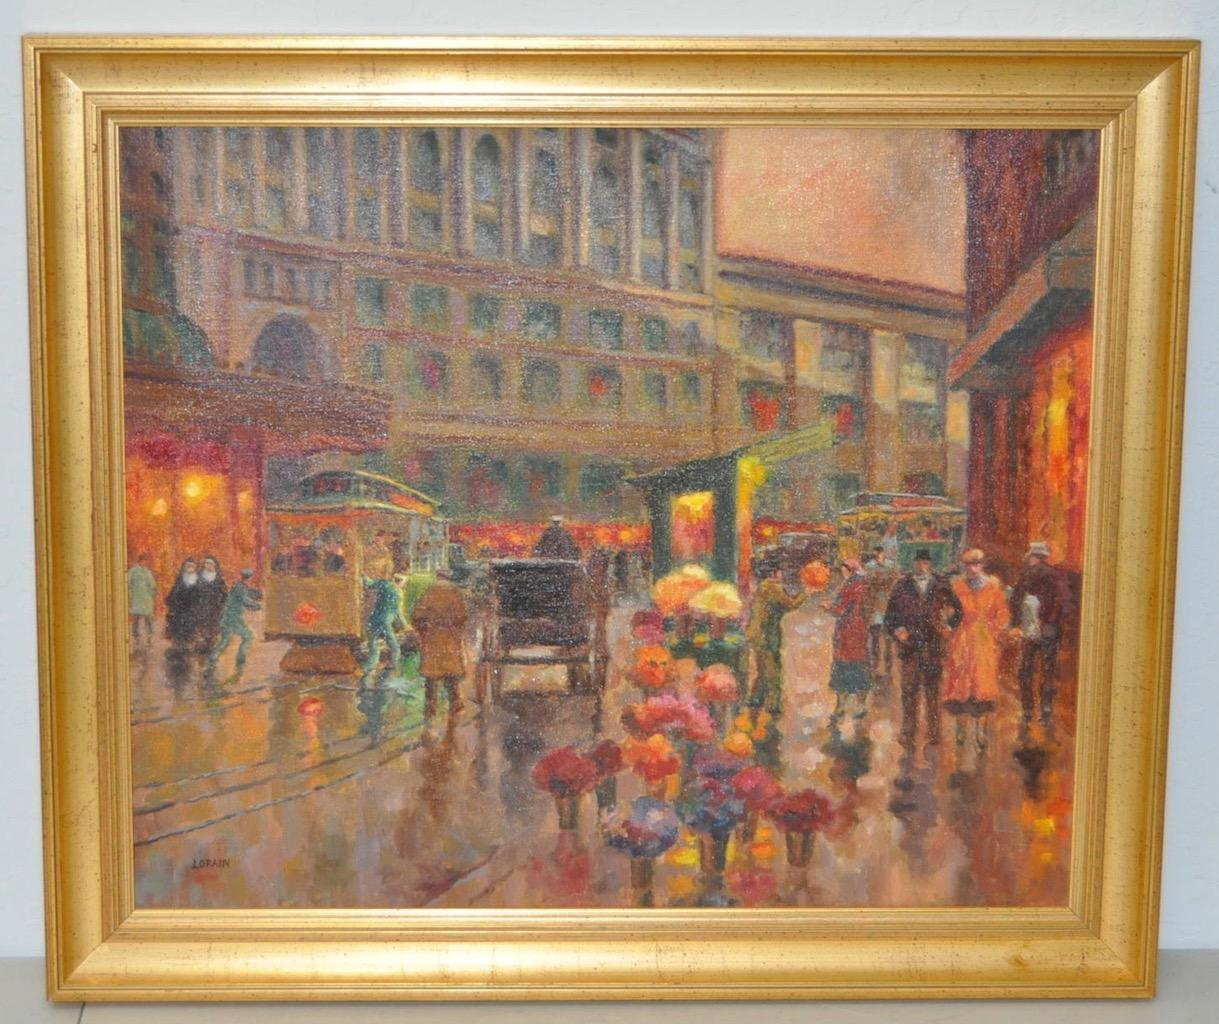 San Francisco Oil Painting By Lorain Archibald Garner C.1950   Image 2 Of 8